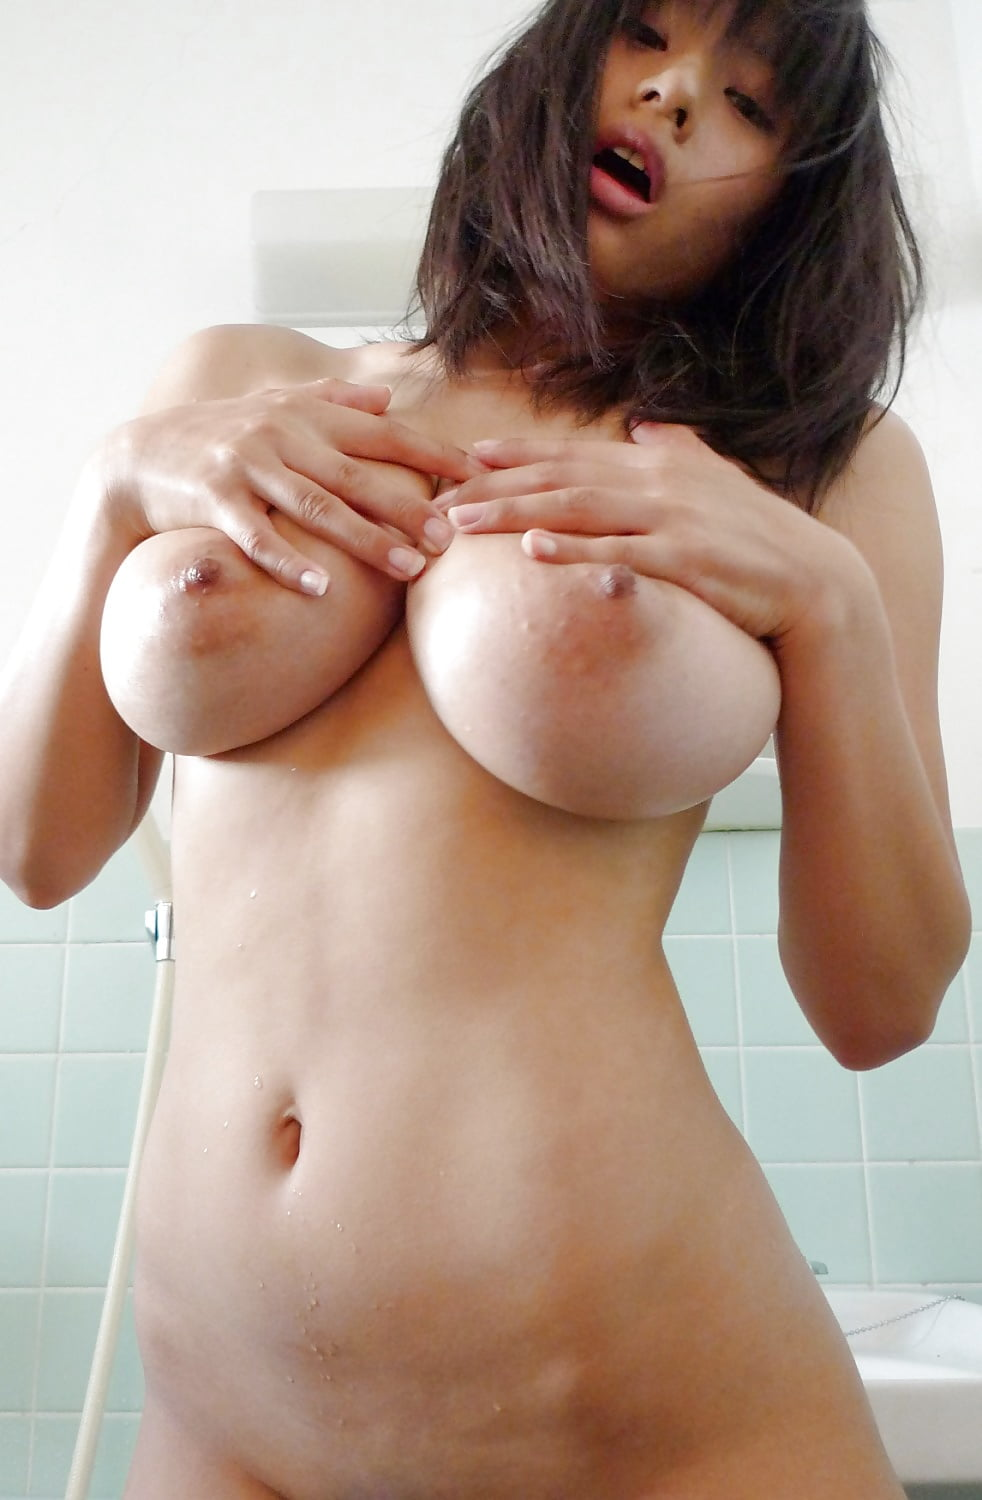 big-tit-asian-nude-pics-free-most-favourite-threesome-footage